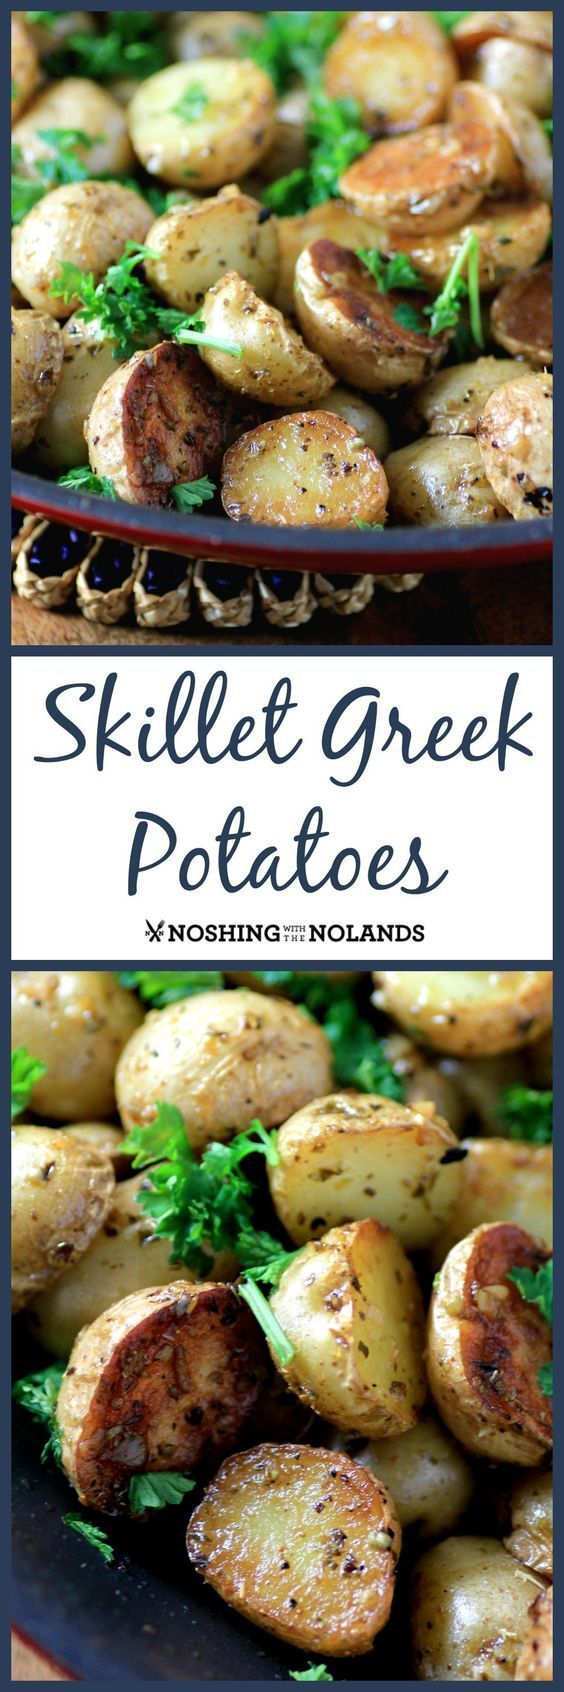 Skillet Greek Potatoes Noshing With The Nolands are bursting with lemony garlicky deliciousness! These crispy Creamer potatoes are quick and effortless to make!